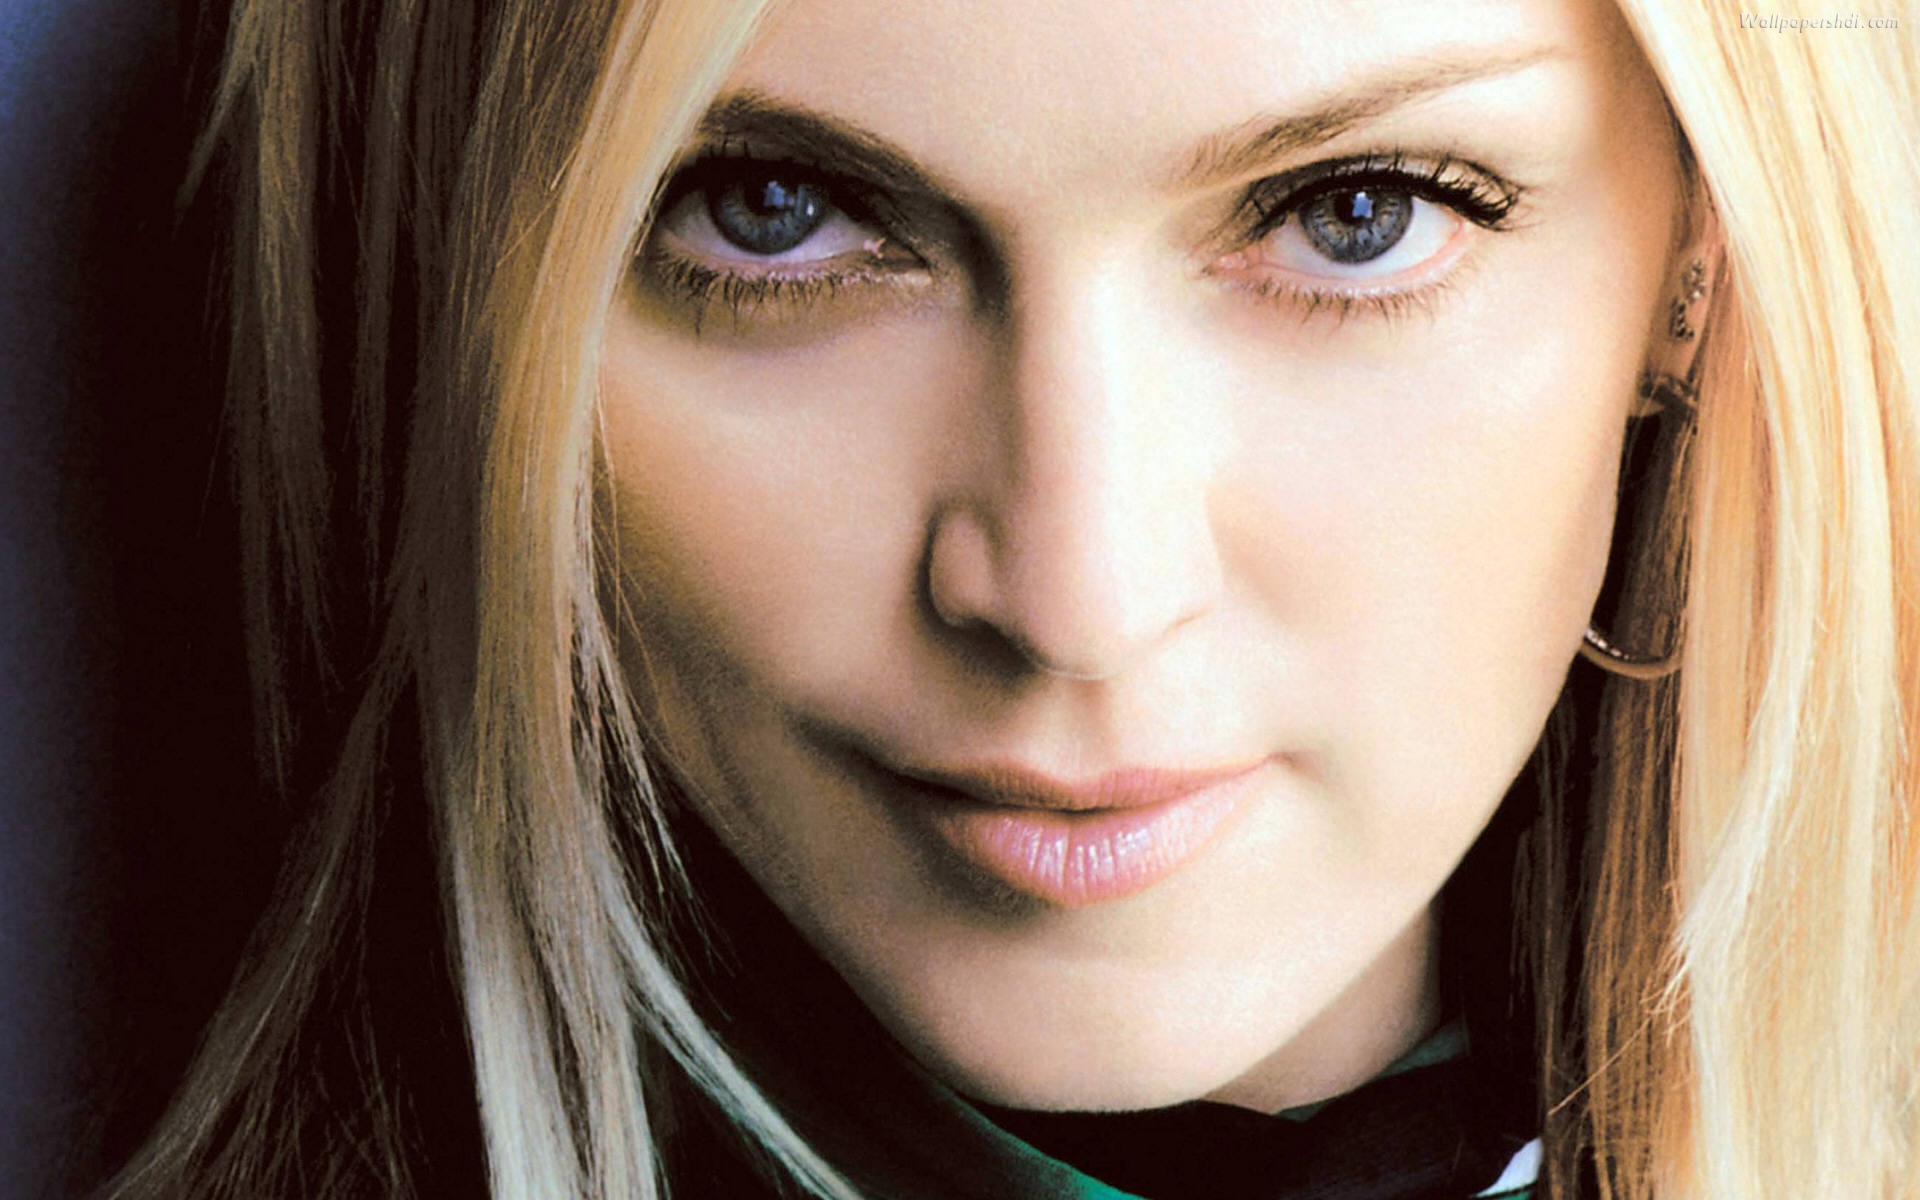 Cute Small Girl Full Hd Wallpaper Madonna Close Up Celebrity